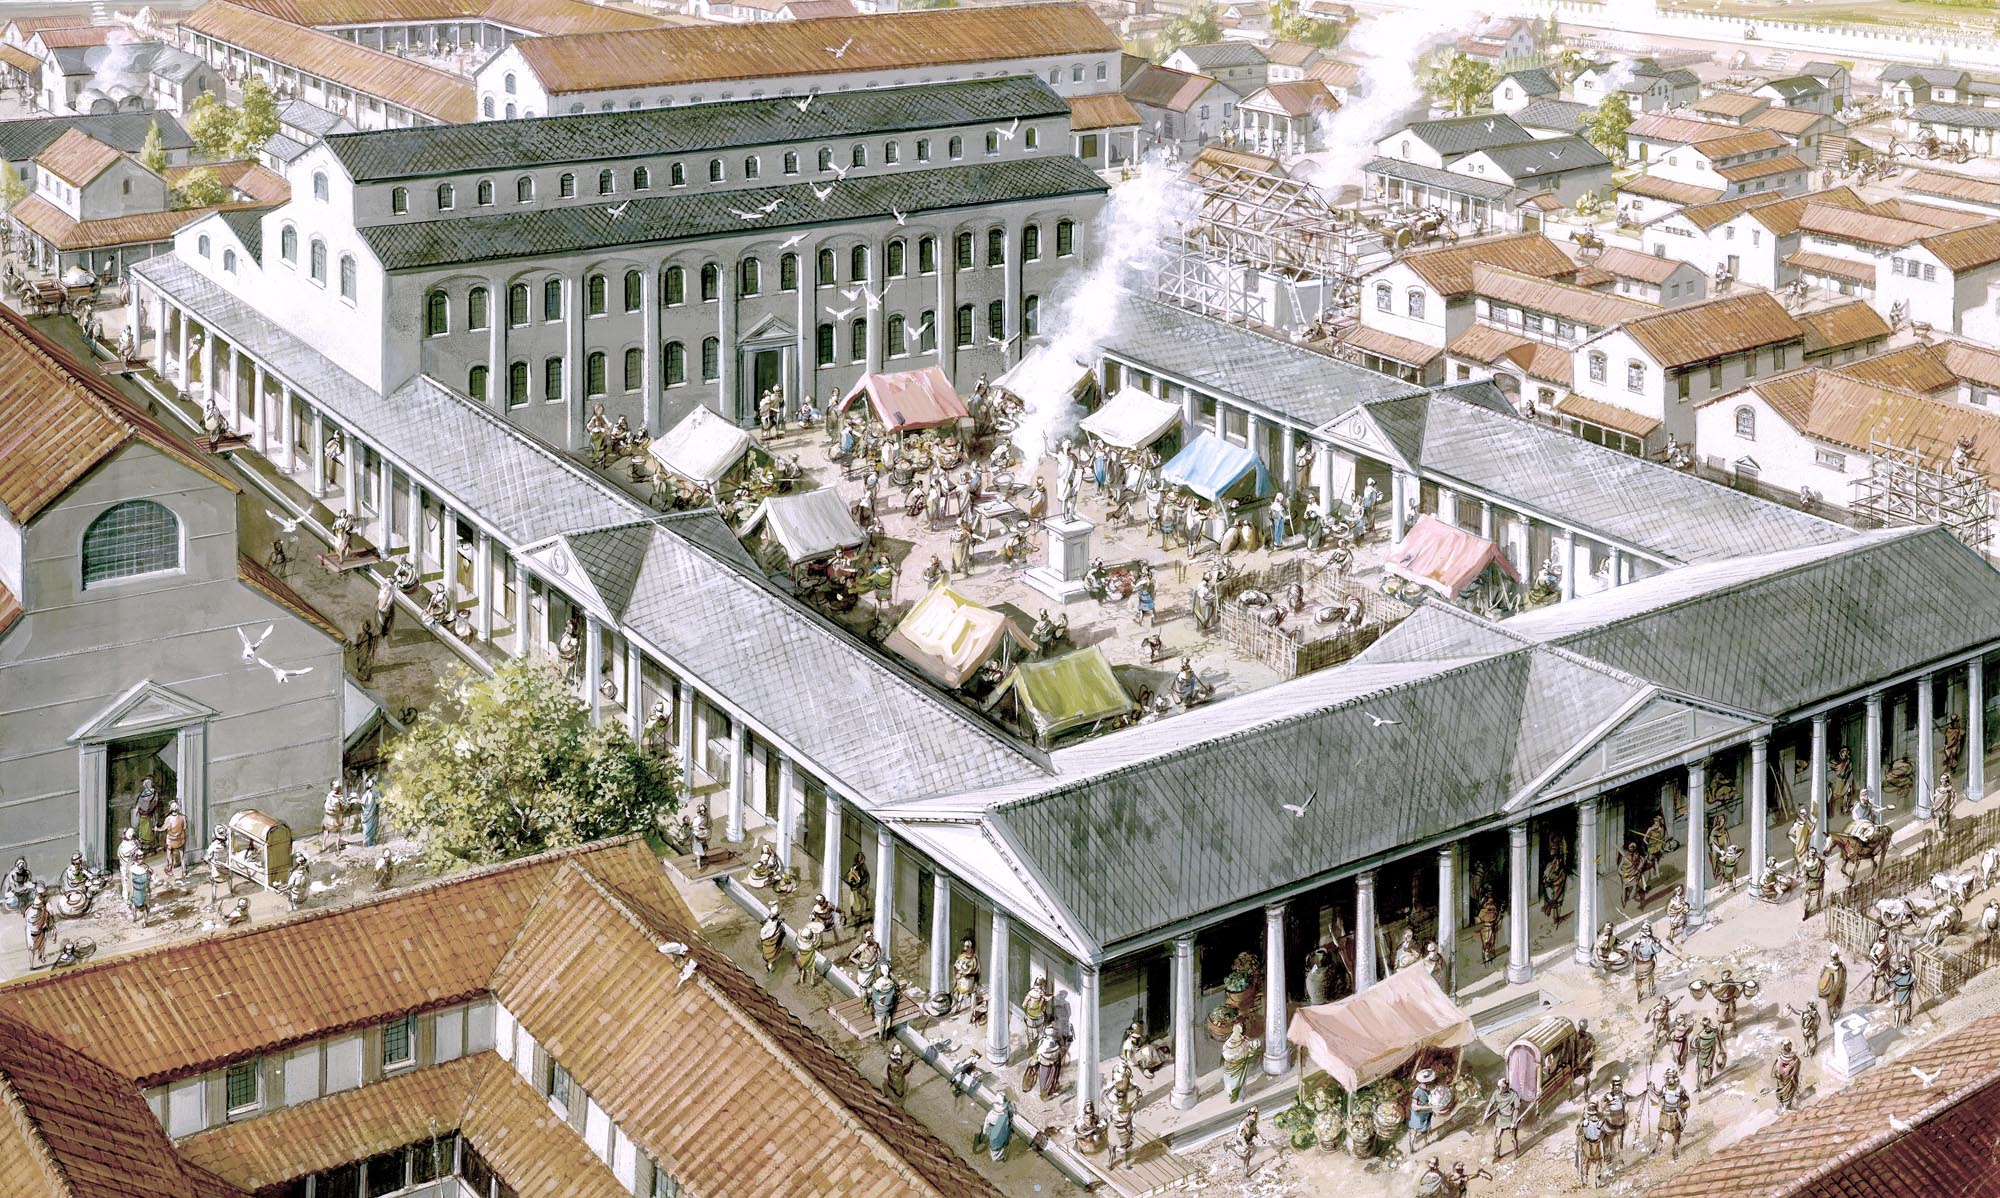 The Roman Forum and Basilica as they may have looked from the south-west during the early 3rd century CE - Leicester Arts and Museums Service / Mike Codd